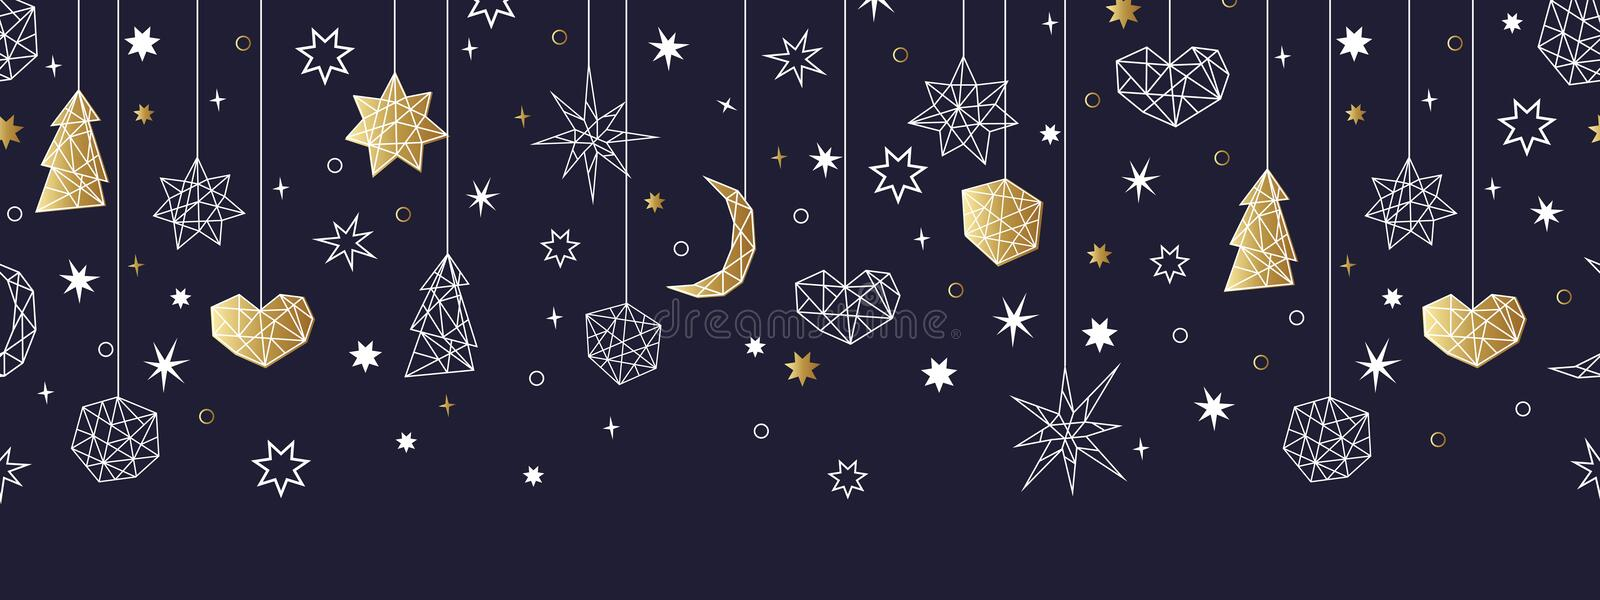 Christmas and Happy New Year gold seamless pattern royalty free illustration